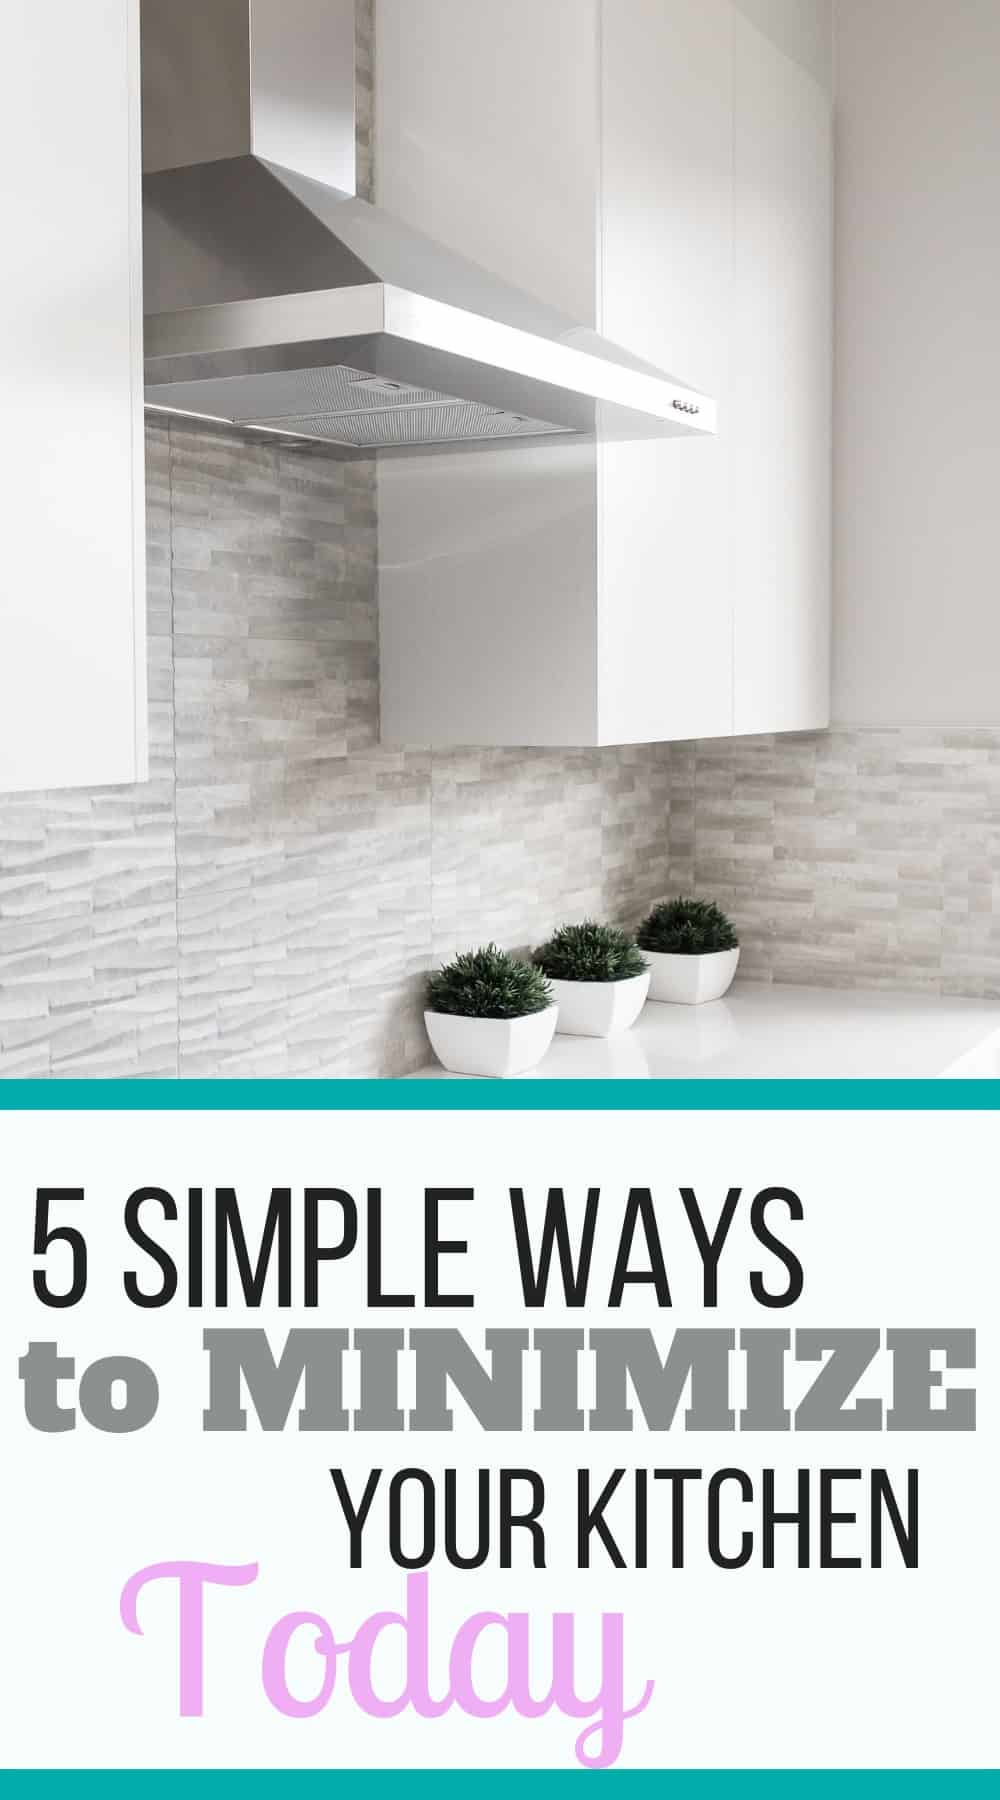 The 5 simple ways to minimize your kitchen today when you are not sure where to start! || #decluttering #minimalist #minimalisthome | kitchen decluttering | home organization | kitchen organization | decluttering tips